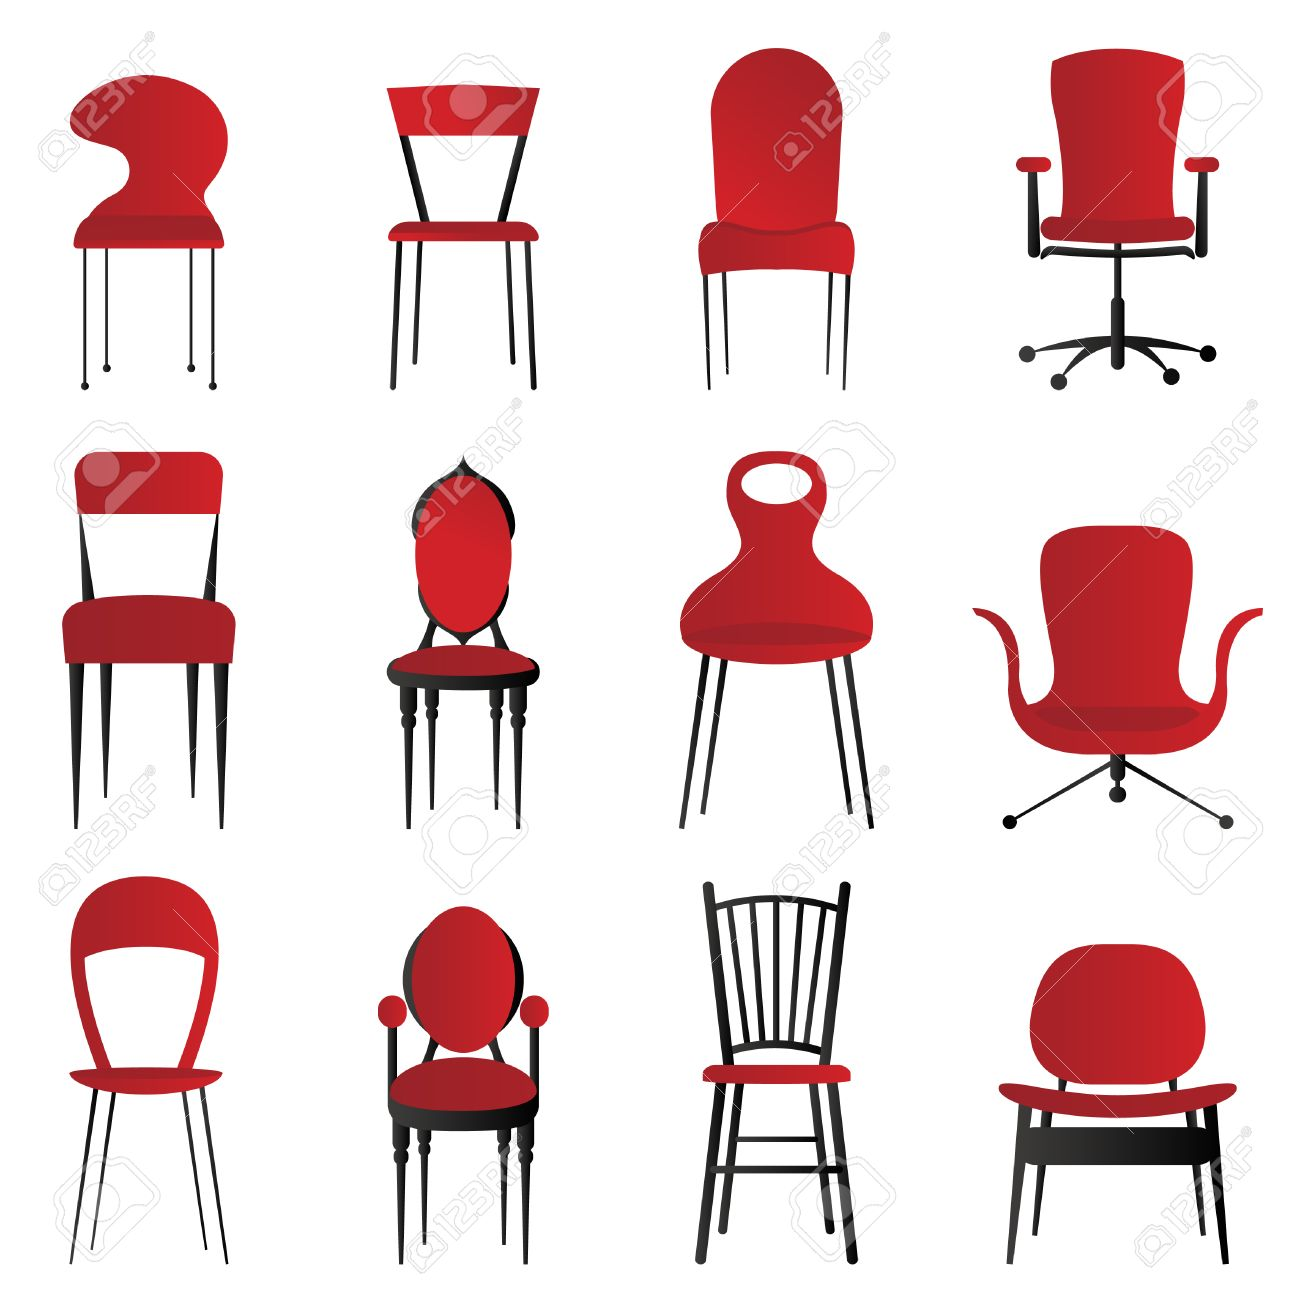 Red Chairs Royalty Free Cliparts Vectors And Stock Illustration